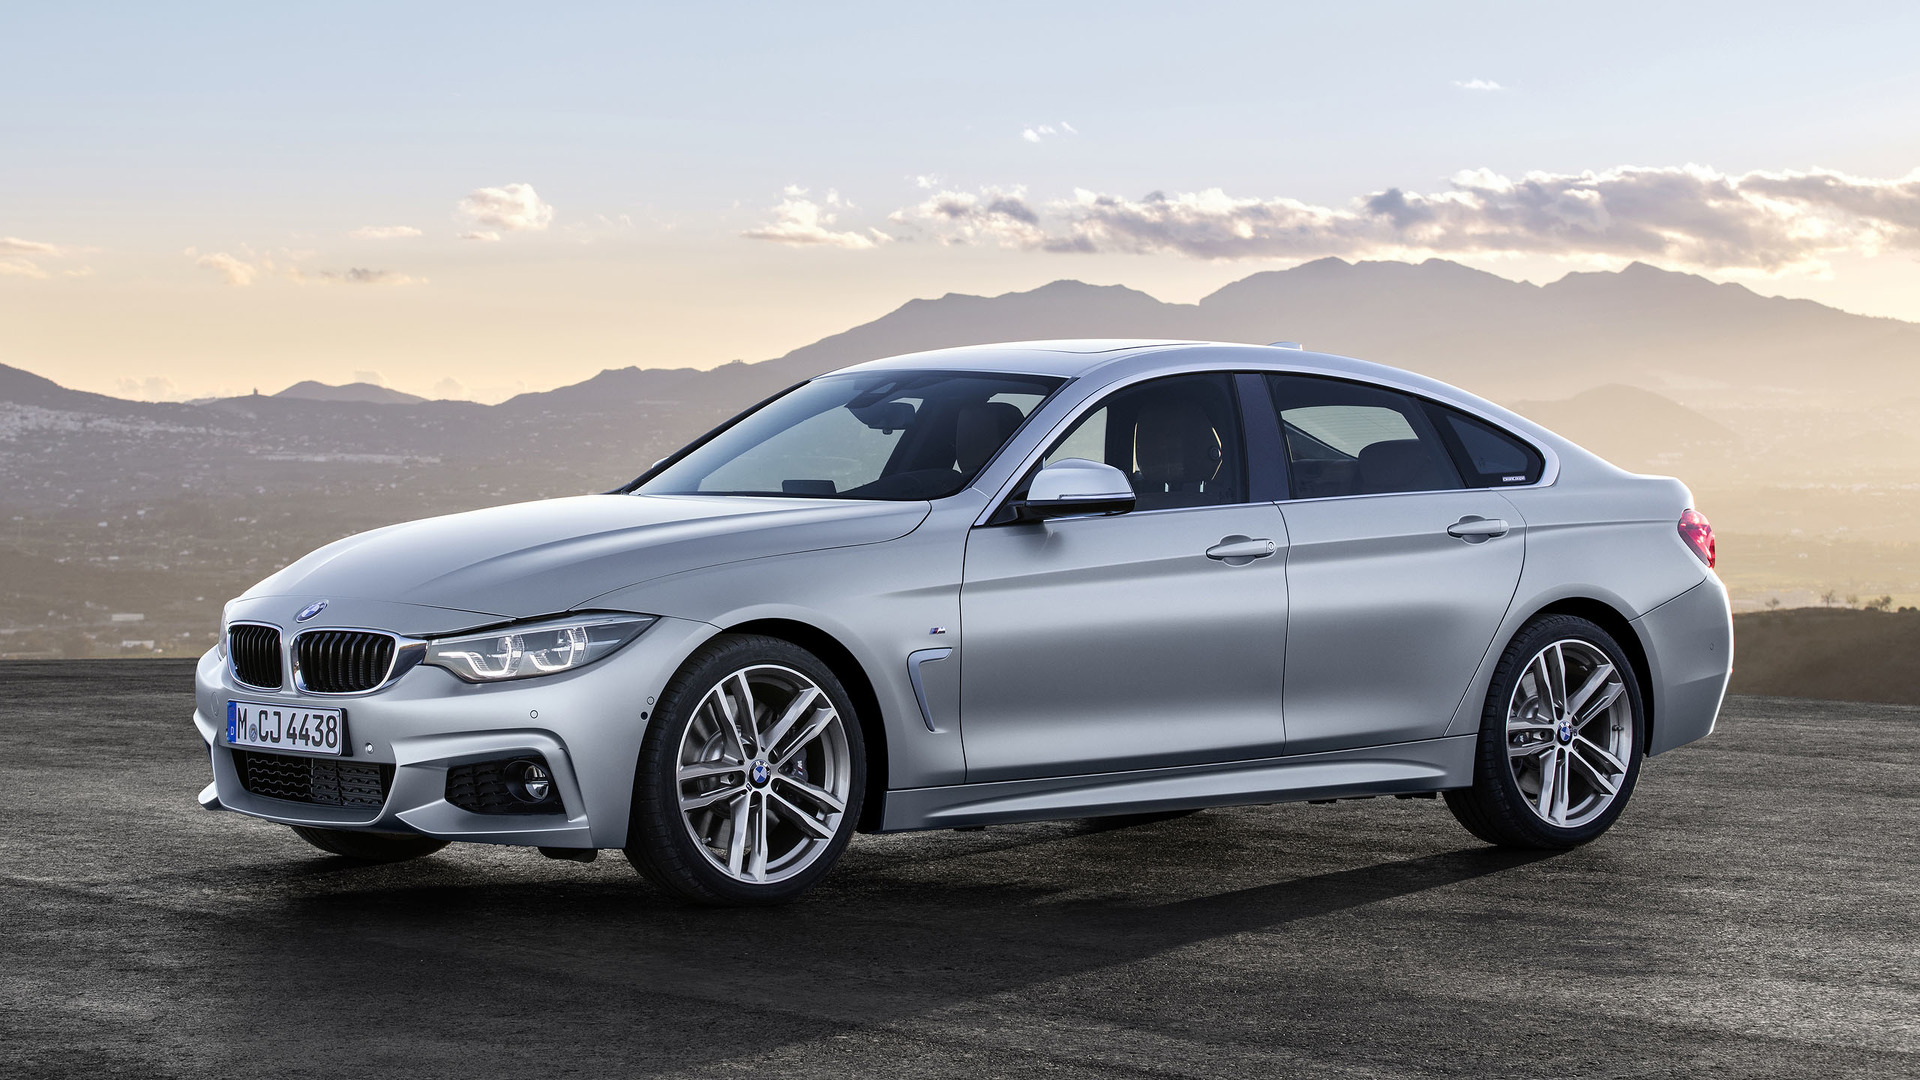 2018 Bmw 4 Series Review >> The Best Selling Bmw 4 Series Coupe Is Actually A Sedan